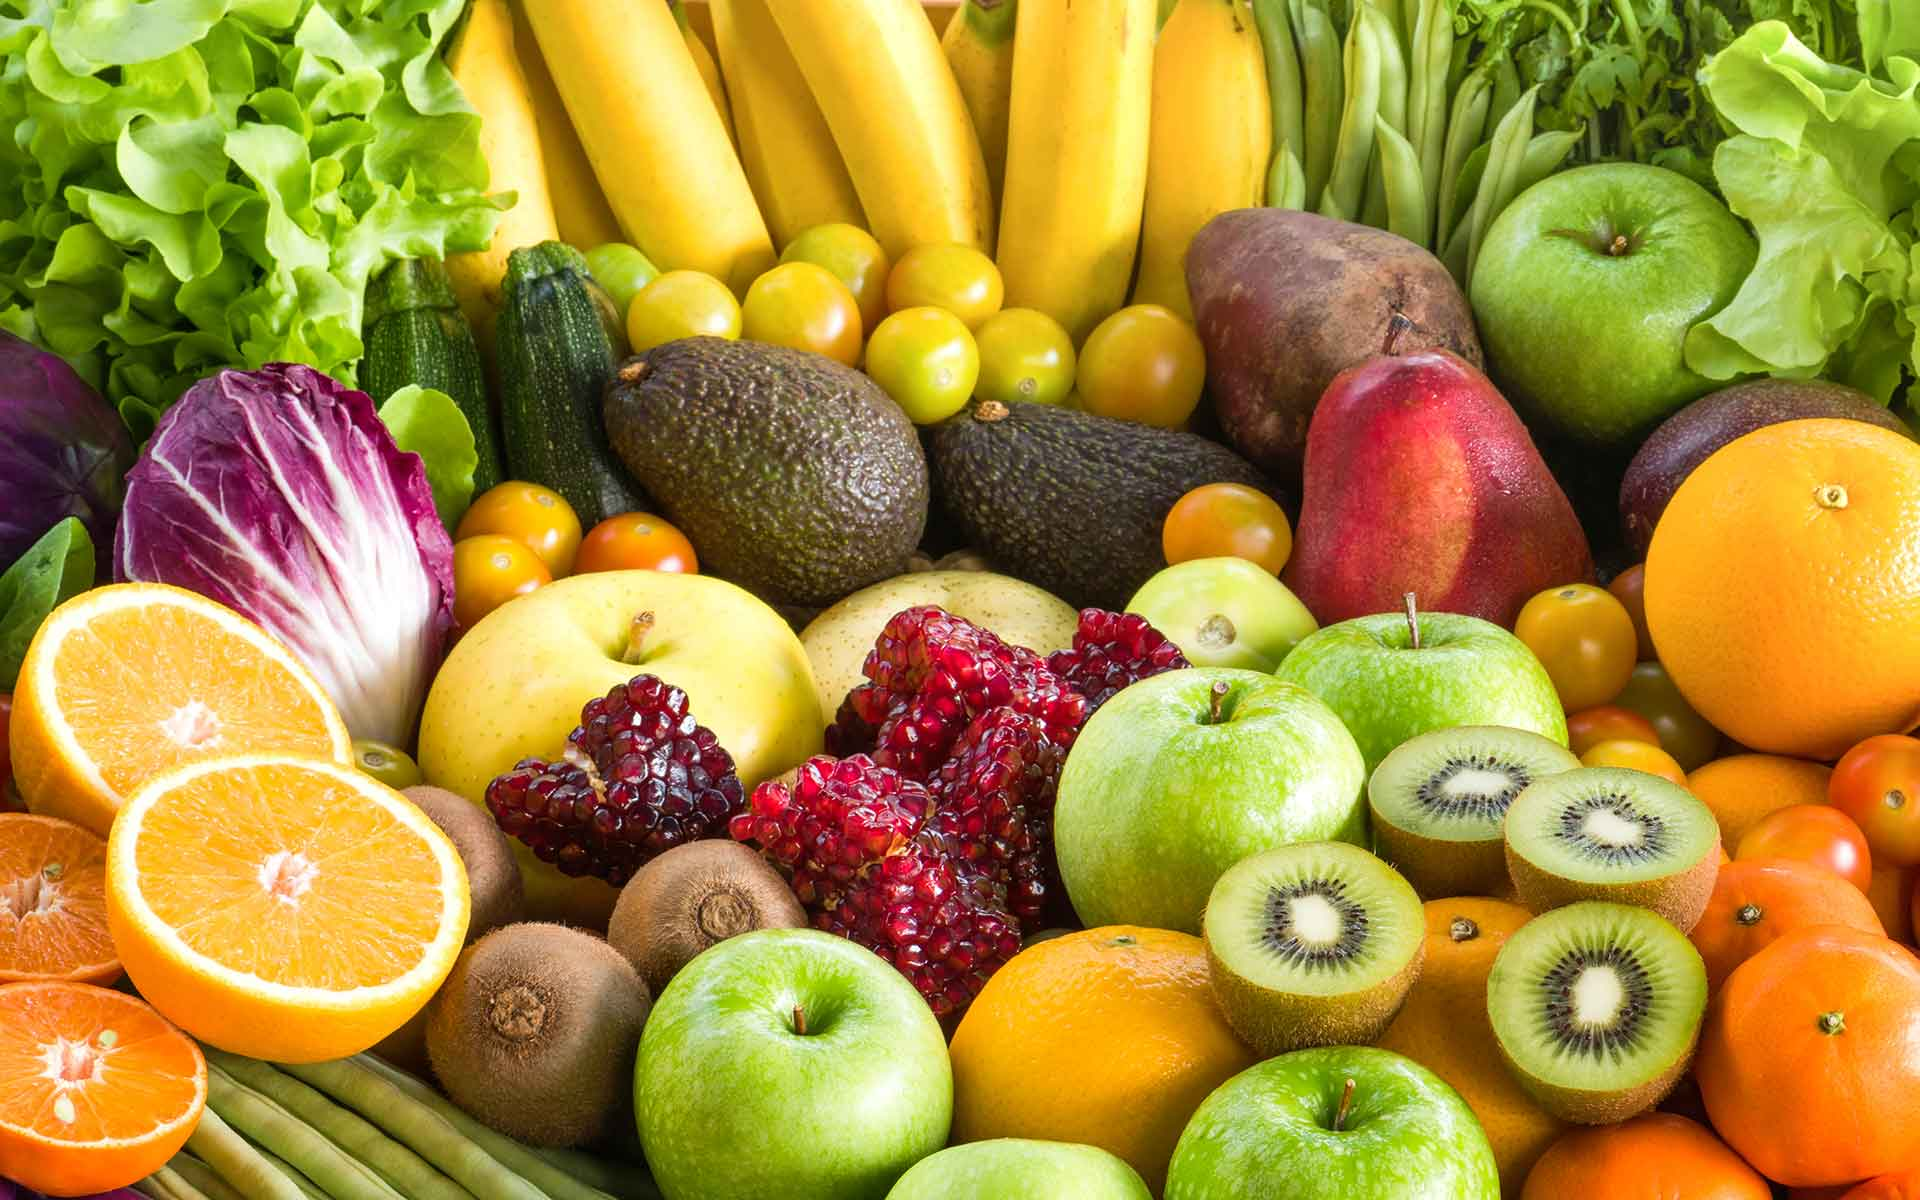 Benefits of whole food vitamins from fruit and vegetables